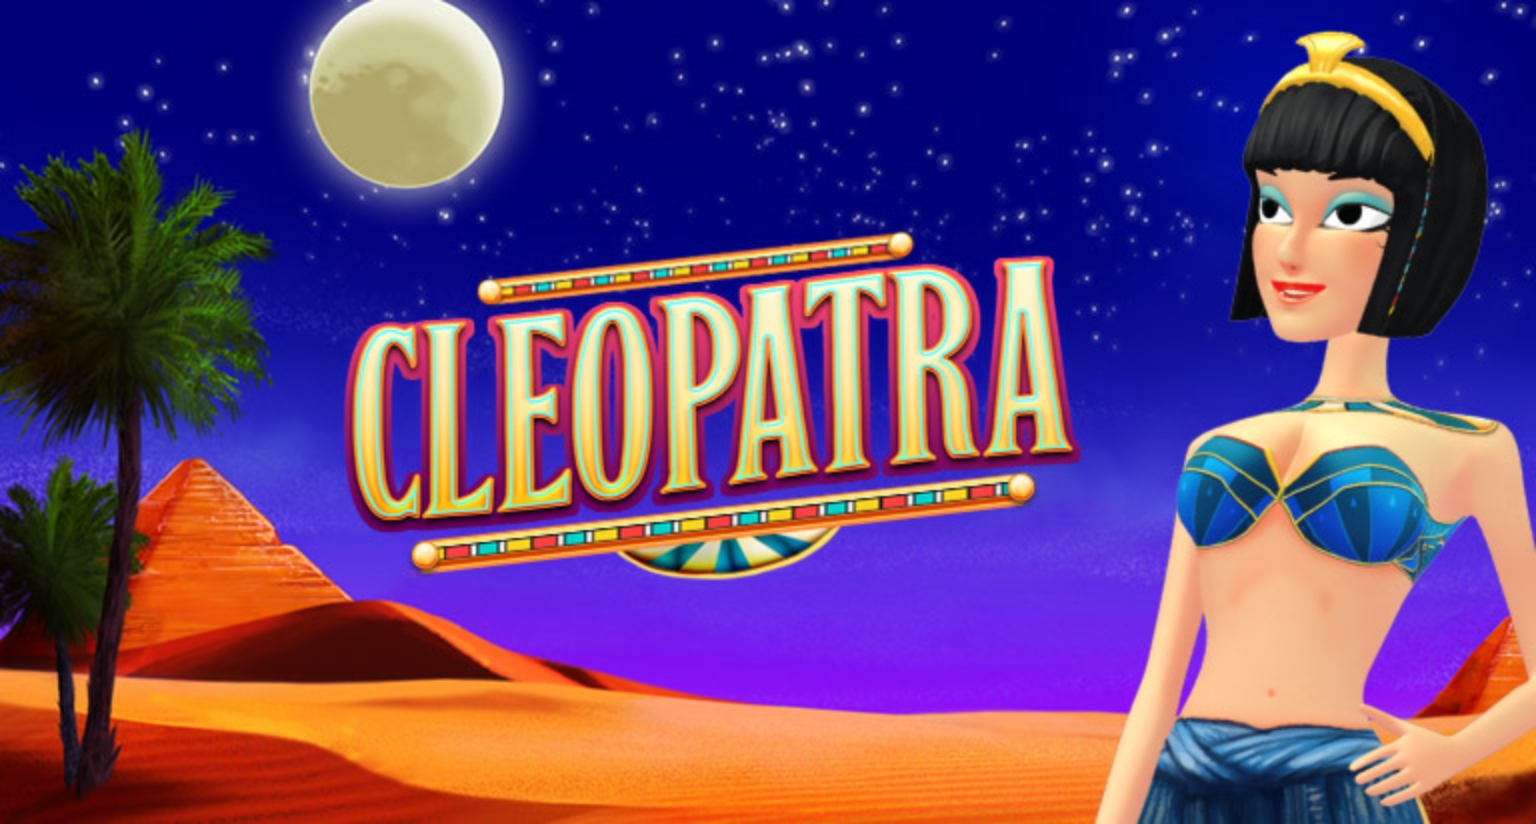 Cleopatra (Arrows Edge) Online Slot Demo Game by Arrows Edge